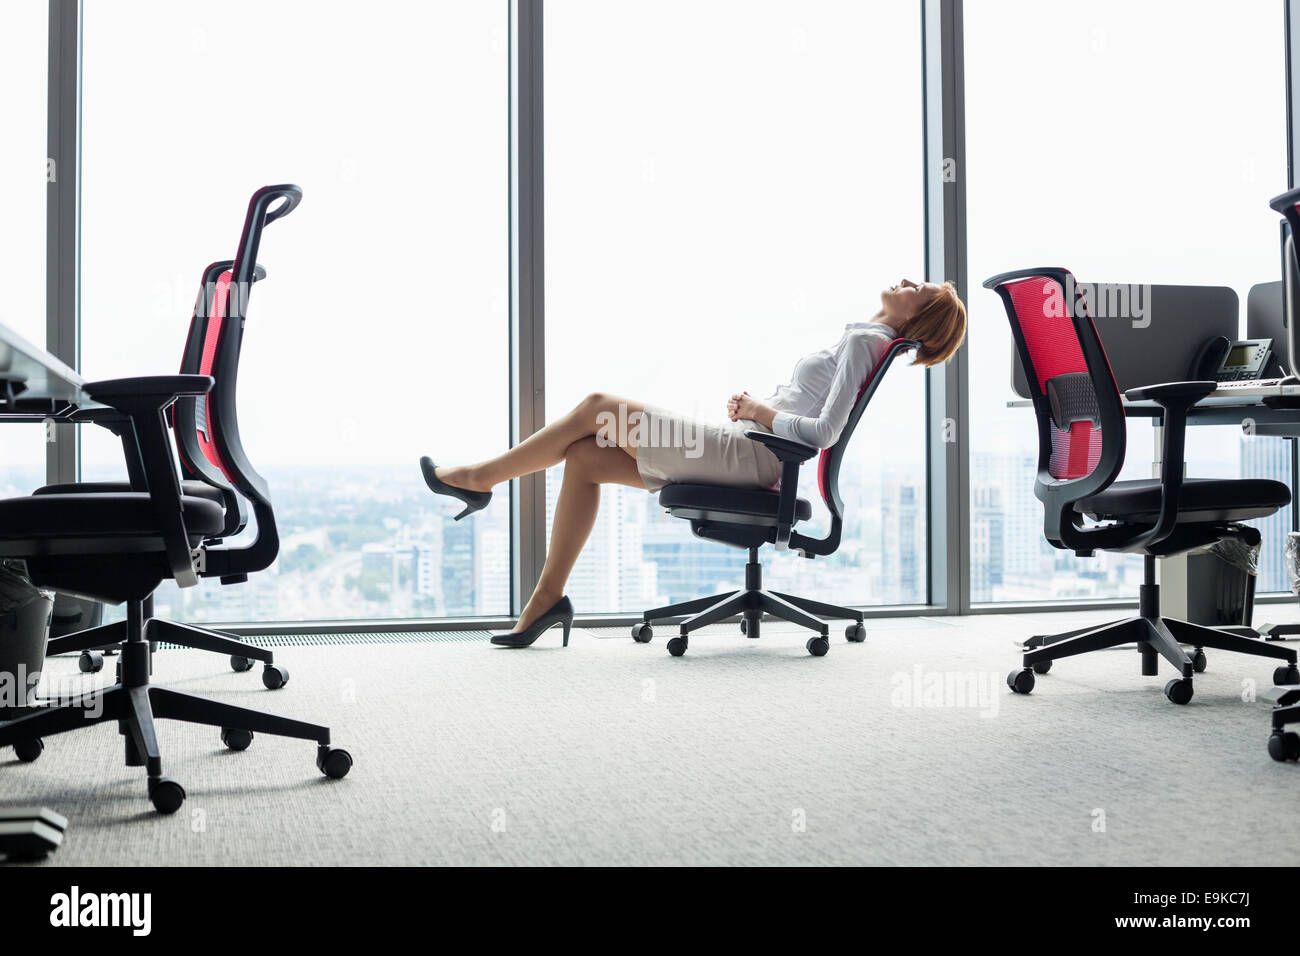 Leaning Back Stock Photos Leaning Back Stock Images Alamy